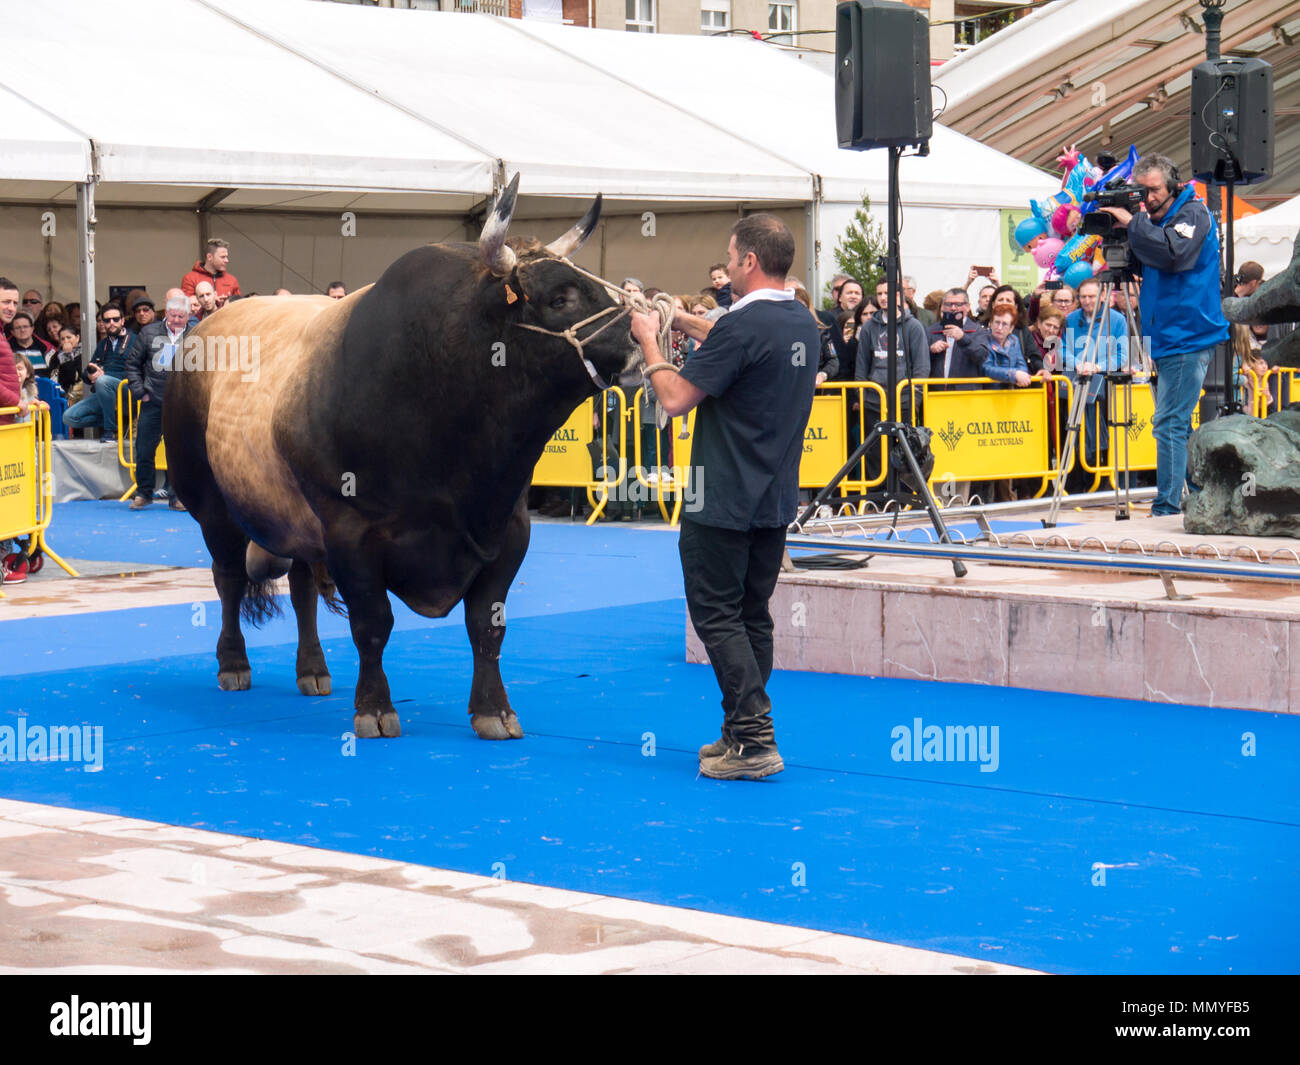 OVIEDO, SPAIN - May 12, 2018:  Huge bull on the breeding exhibition at the Plaza Ferroviarios Asturianos on the Ascension Fair, Oviedo, Spain. - Stock Image